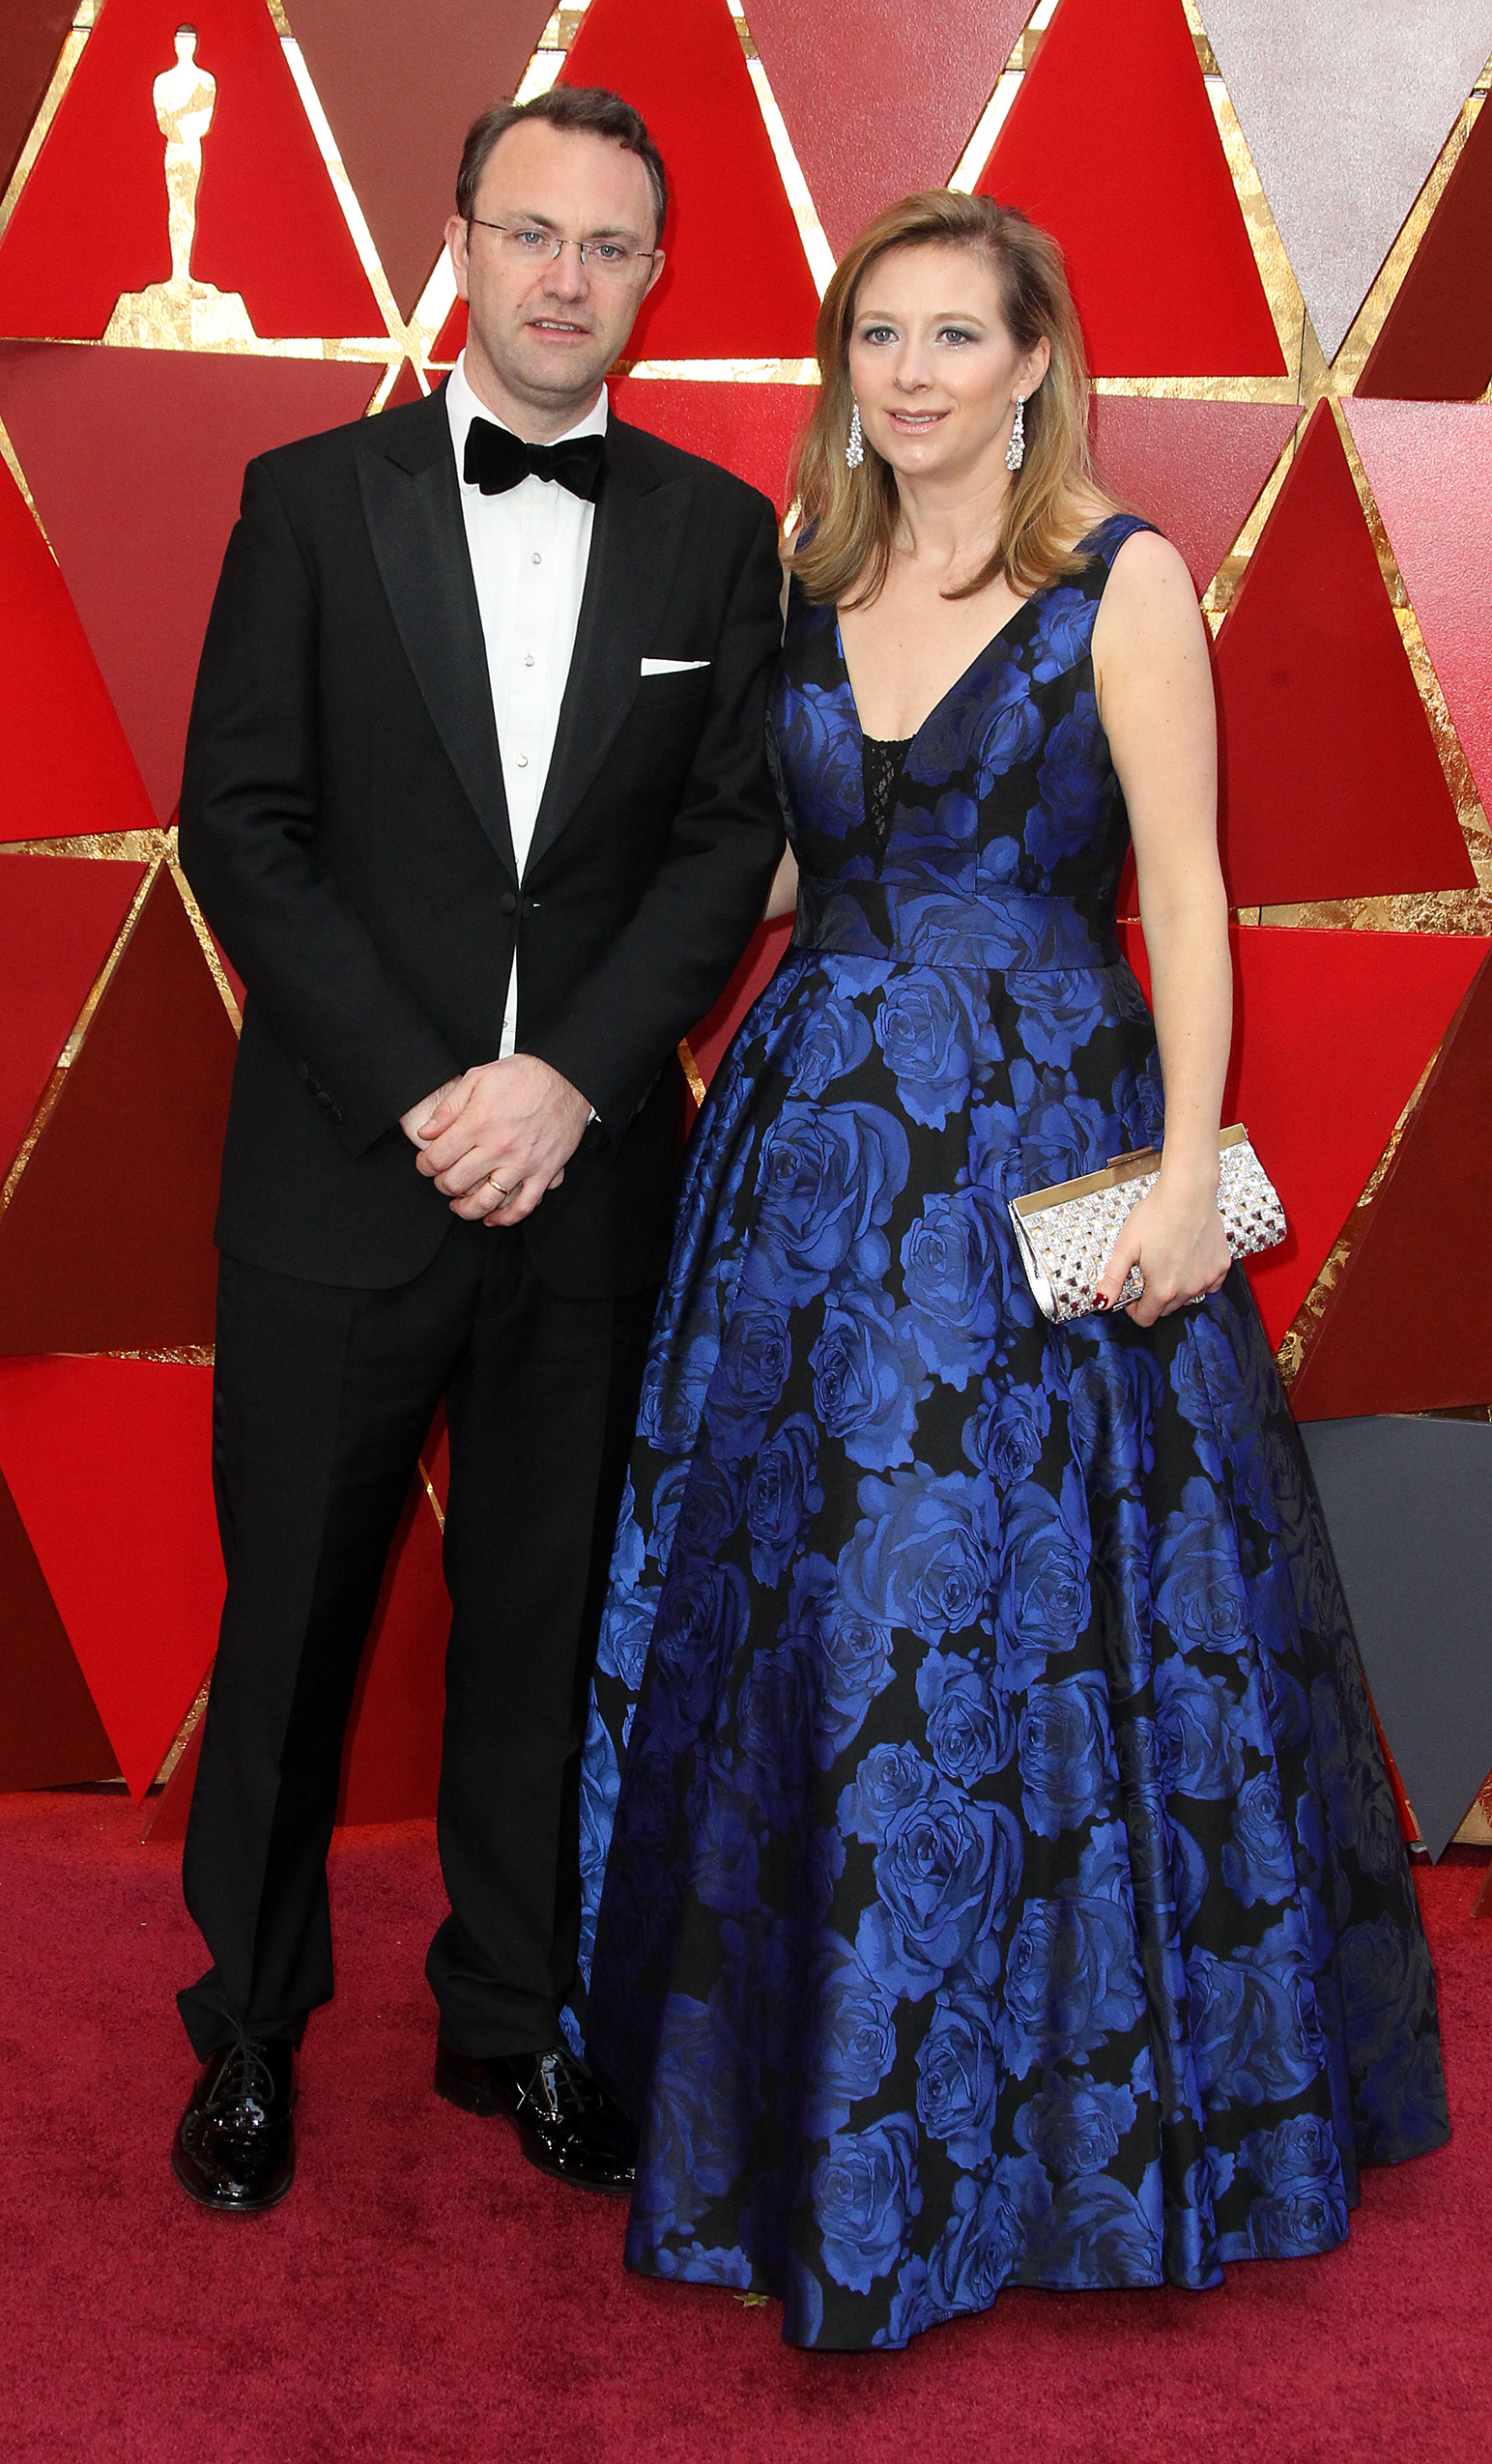 Jonathan and Camilla Fawkner{&amp;nbsp;}arrive at the 90th Annual Academy Awards (Oscars) held at the Dolby Theater in Hollywood, California. (Image: Adriana M. Barraza/WENN.com) <p></p>